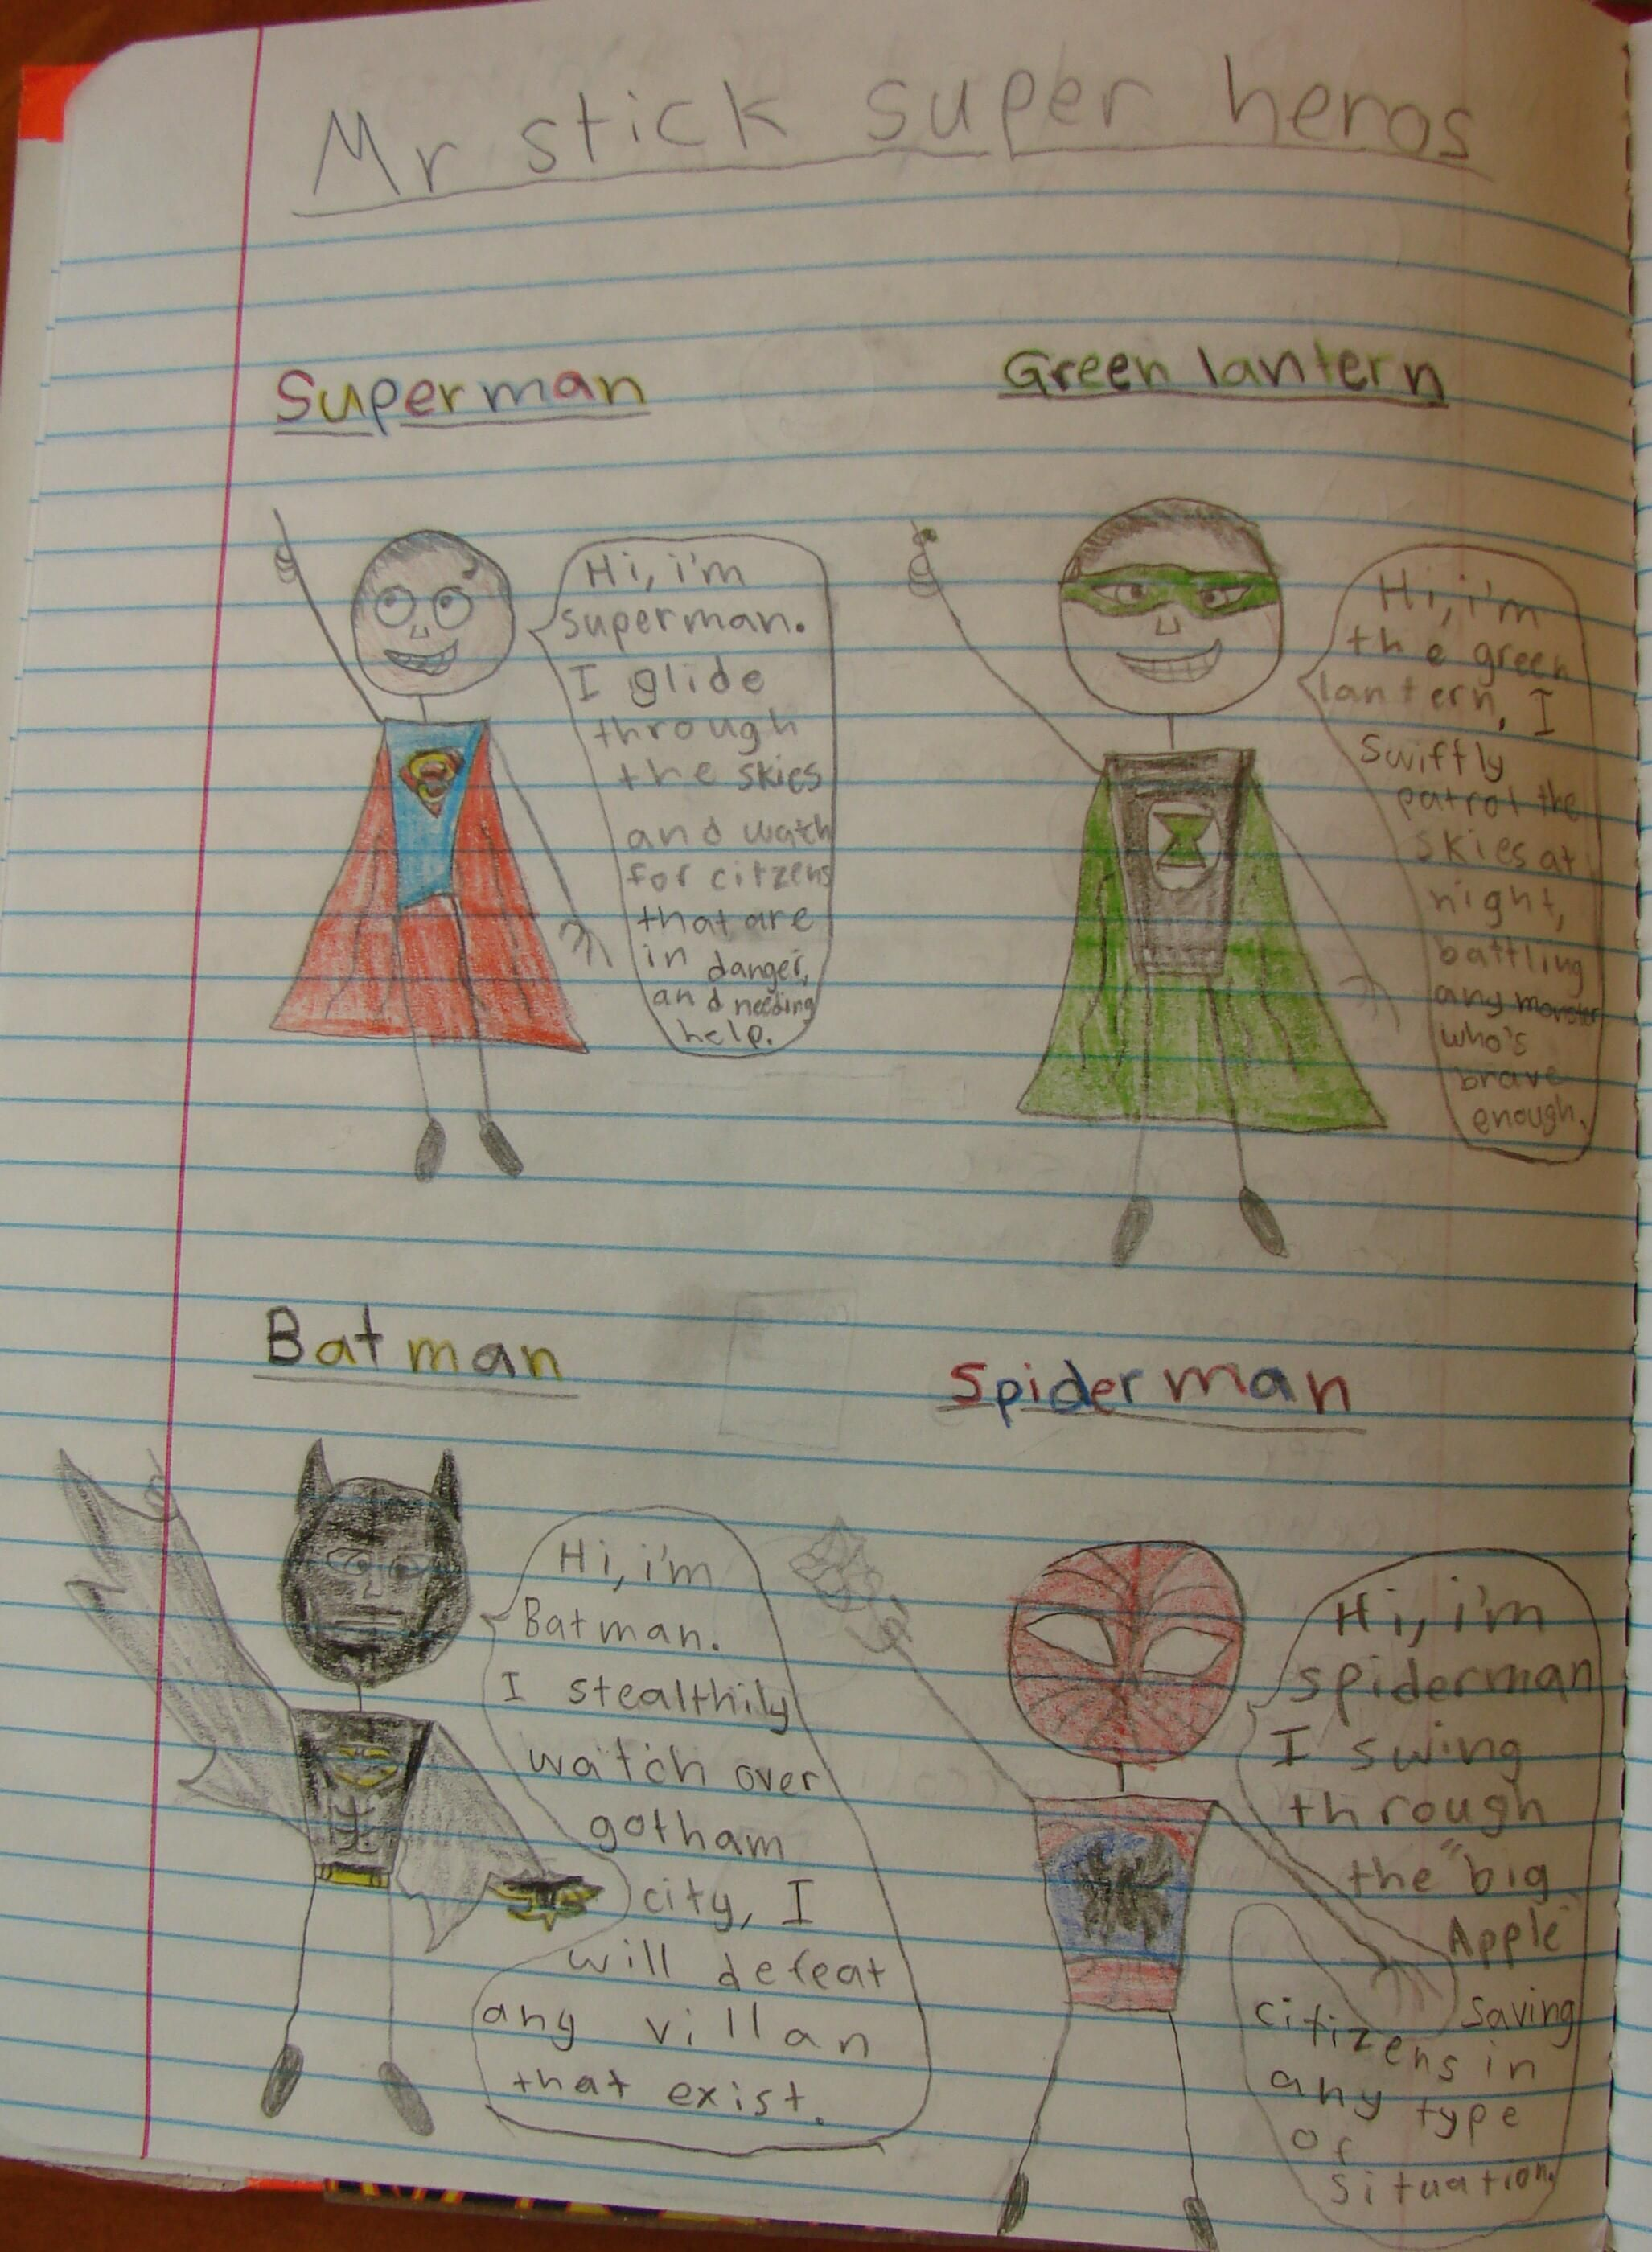 Boys and superheroes--it's an easy way to get them doing sacred writing, and if you use Mr. Stick, a lot of them will start creating notebook pages they're really proud of.  Check out my Mr. Stick resources online: http://corbettharrison.com/Mr_Stick.html